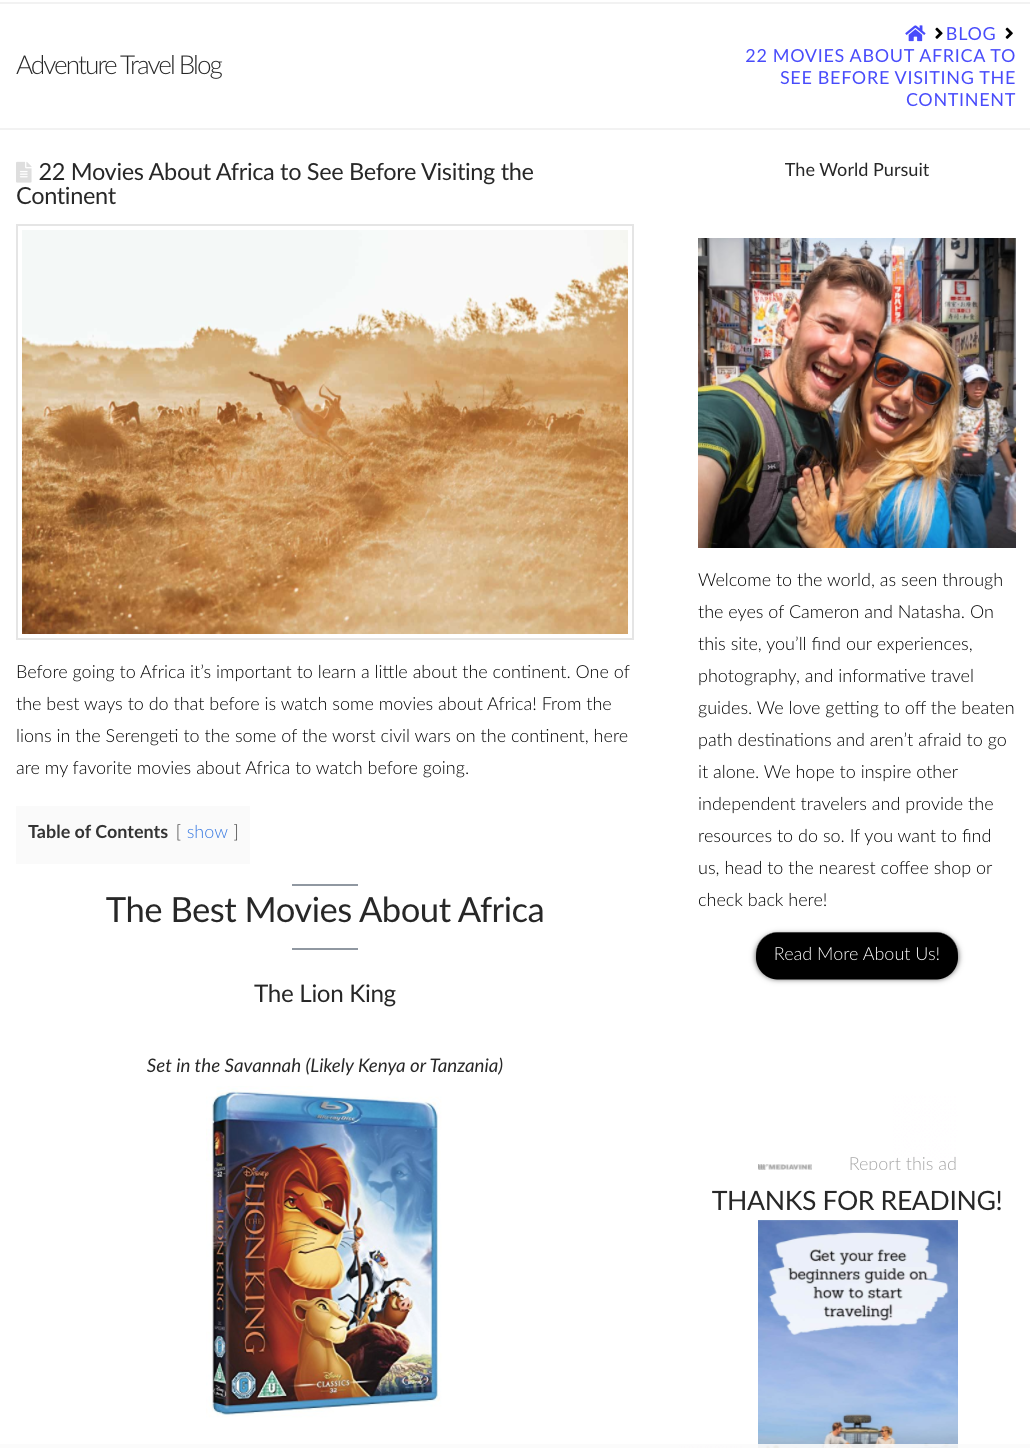 An example of a travel blogger with movies about Africa